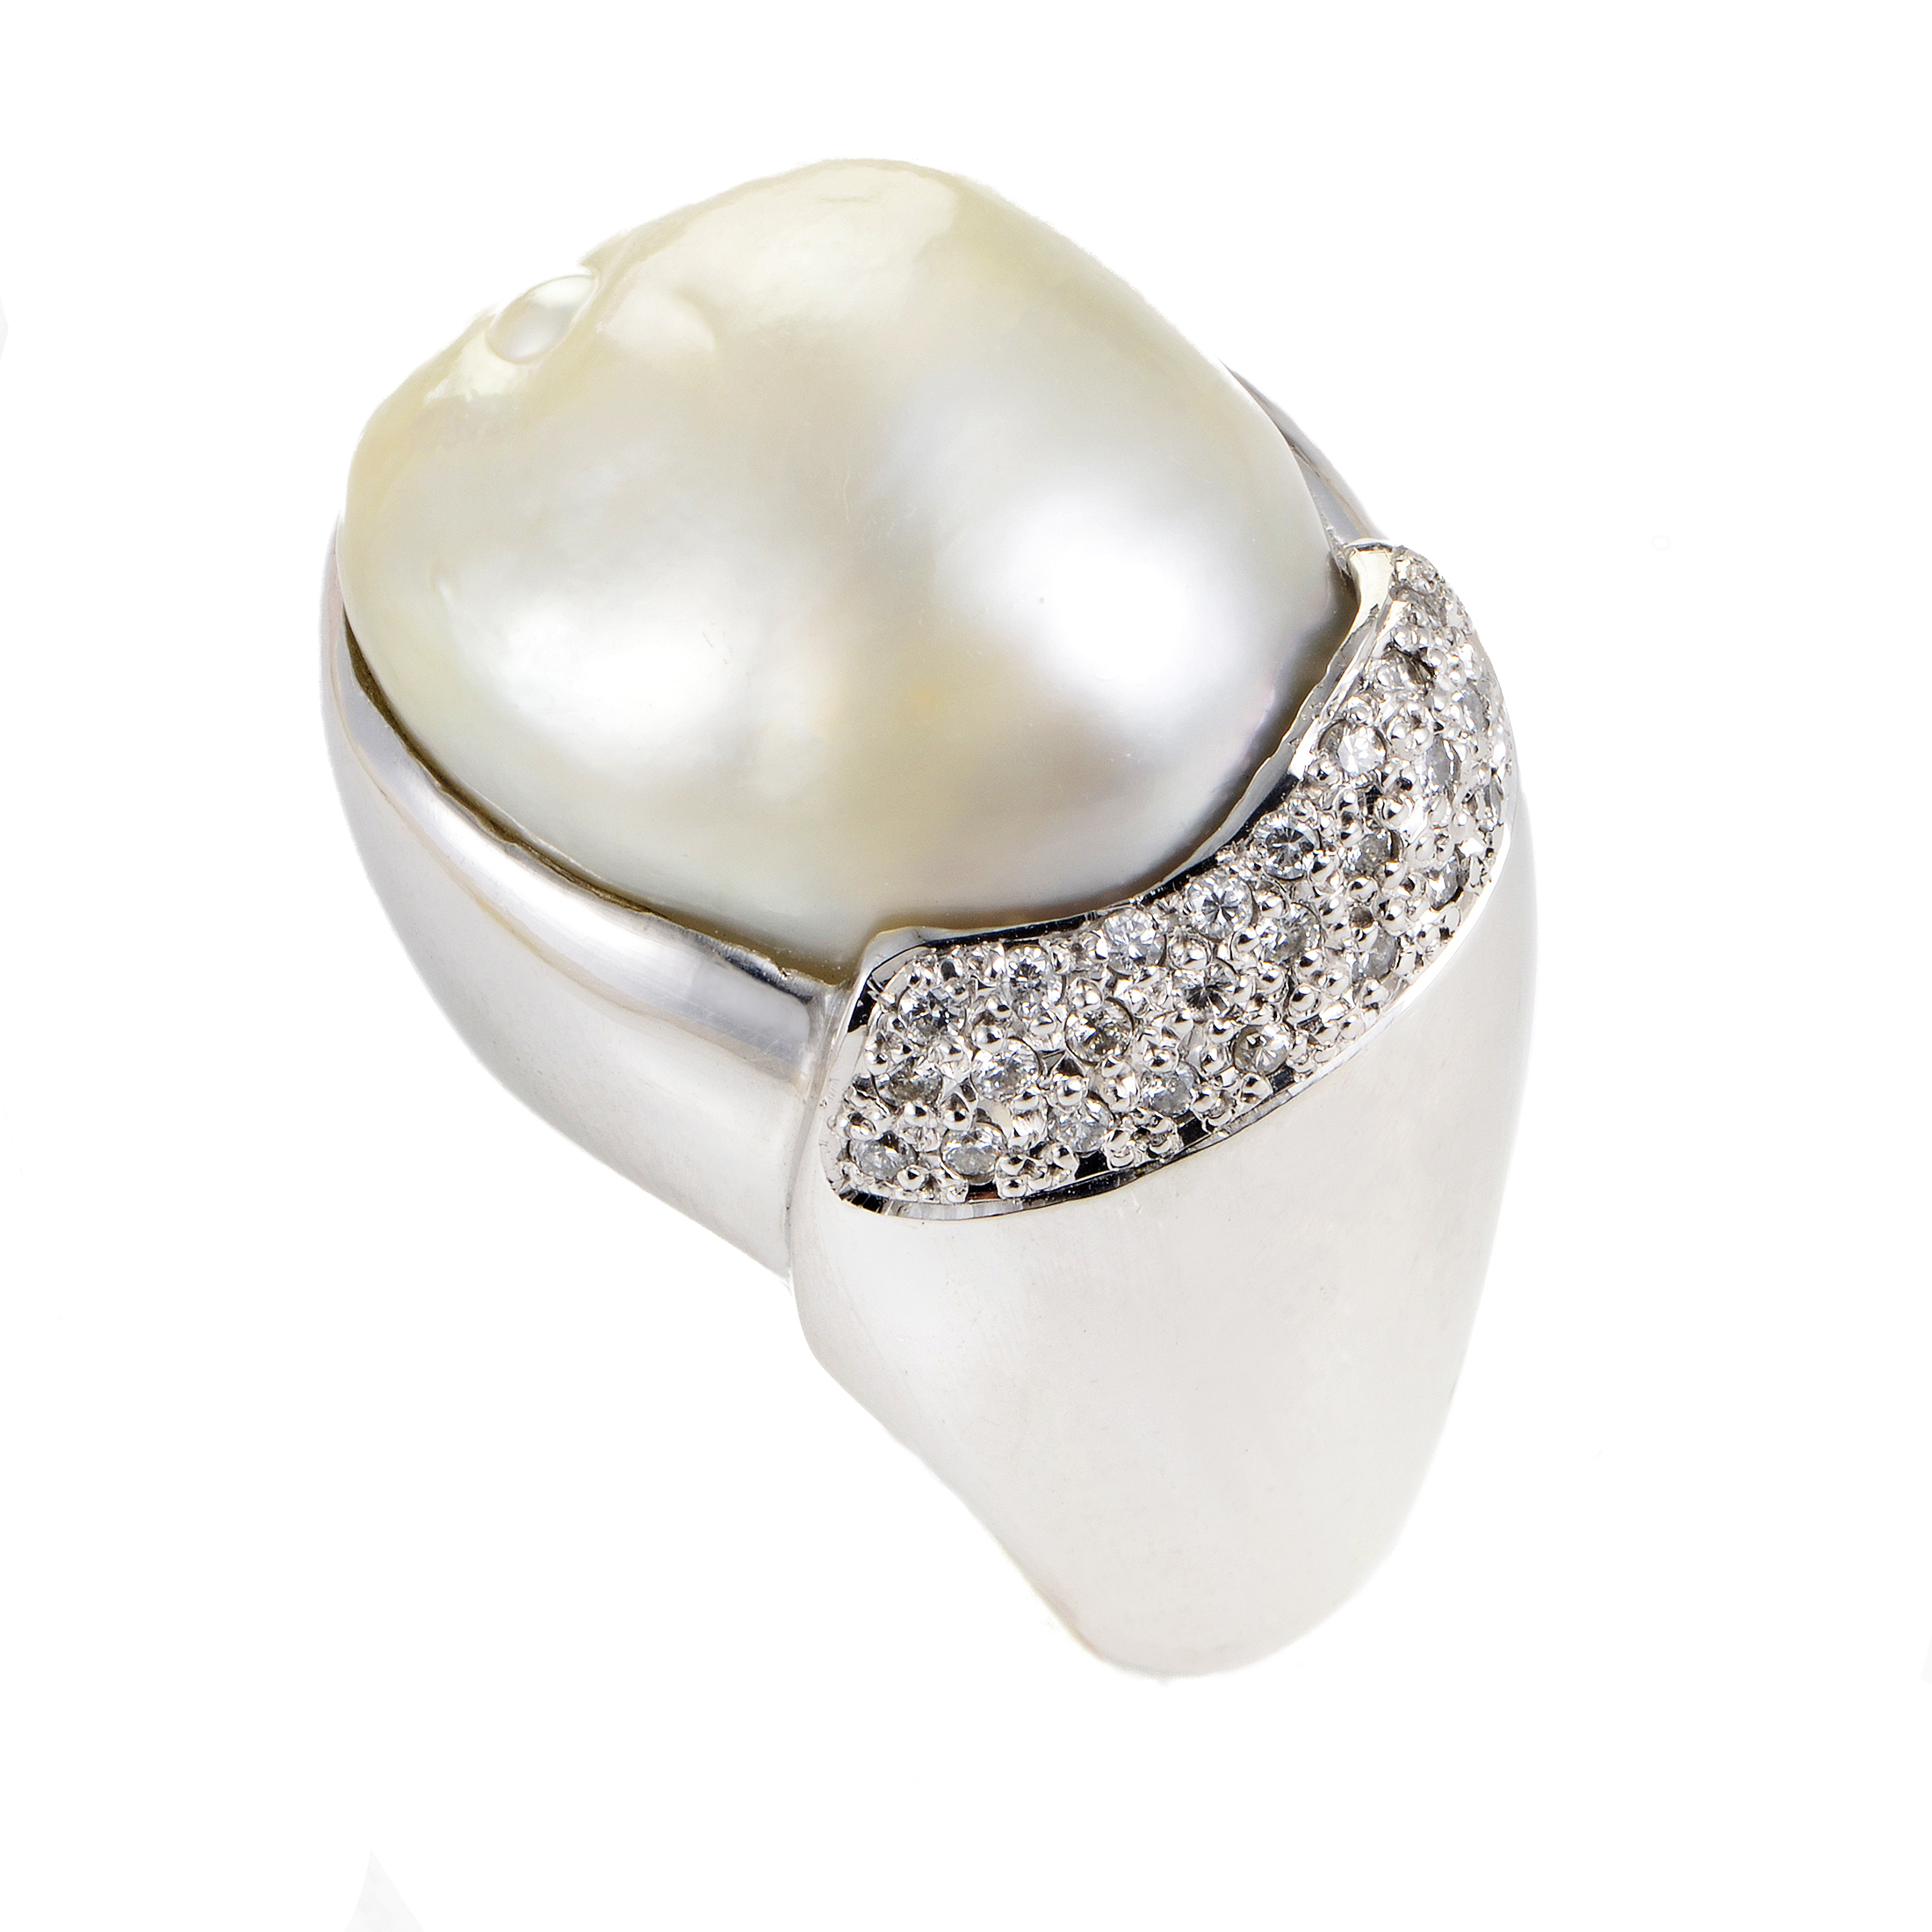 Women's Platinum Diamond & Mabe Pearl Cocktail Ring